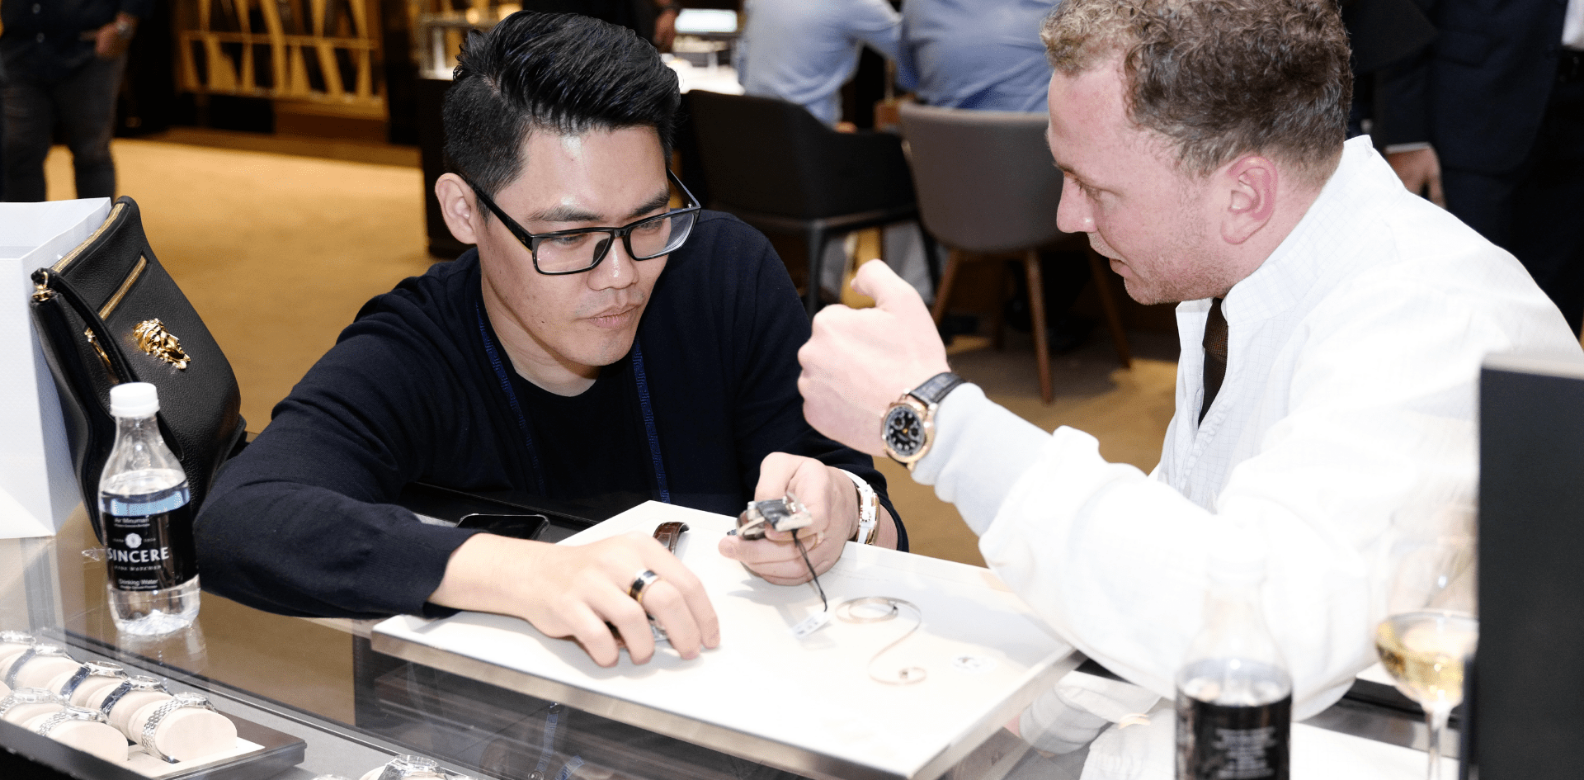 Watchmaker and head of A. Lange & Söhne's Zeitwerk department Robert Hoffmann leading a guest through the inner workings of a watch (Photo: Sincere Fine Watches)